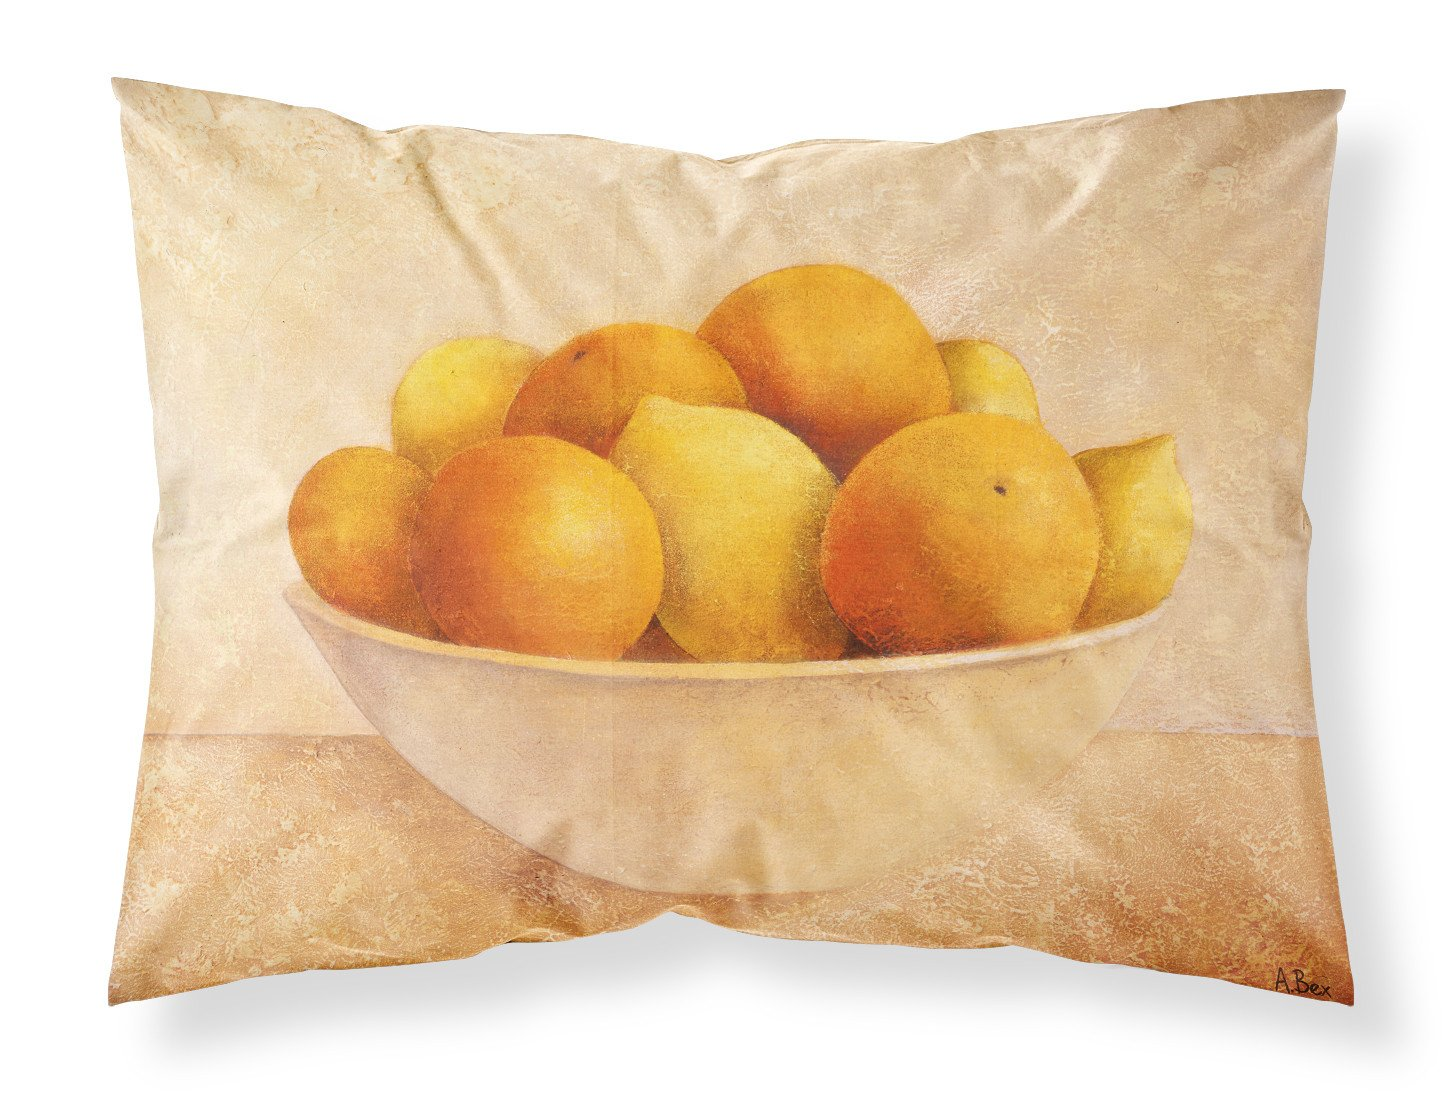 Oranges & Lemons in a Bowl Fabric Standard Pillowcase BABE0085PILLOWCASE by Caroline's Treasures